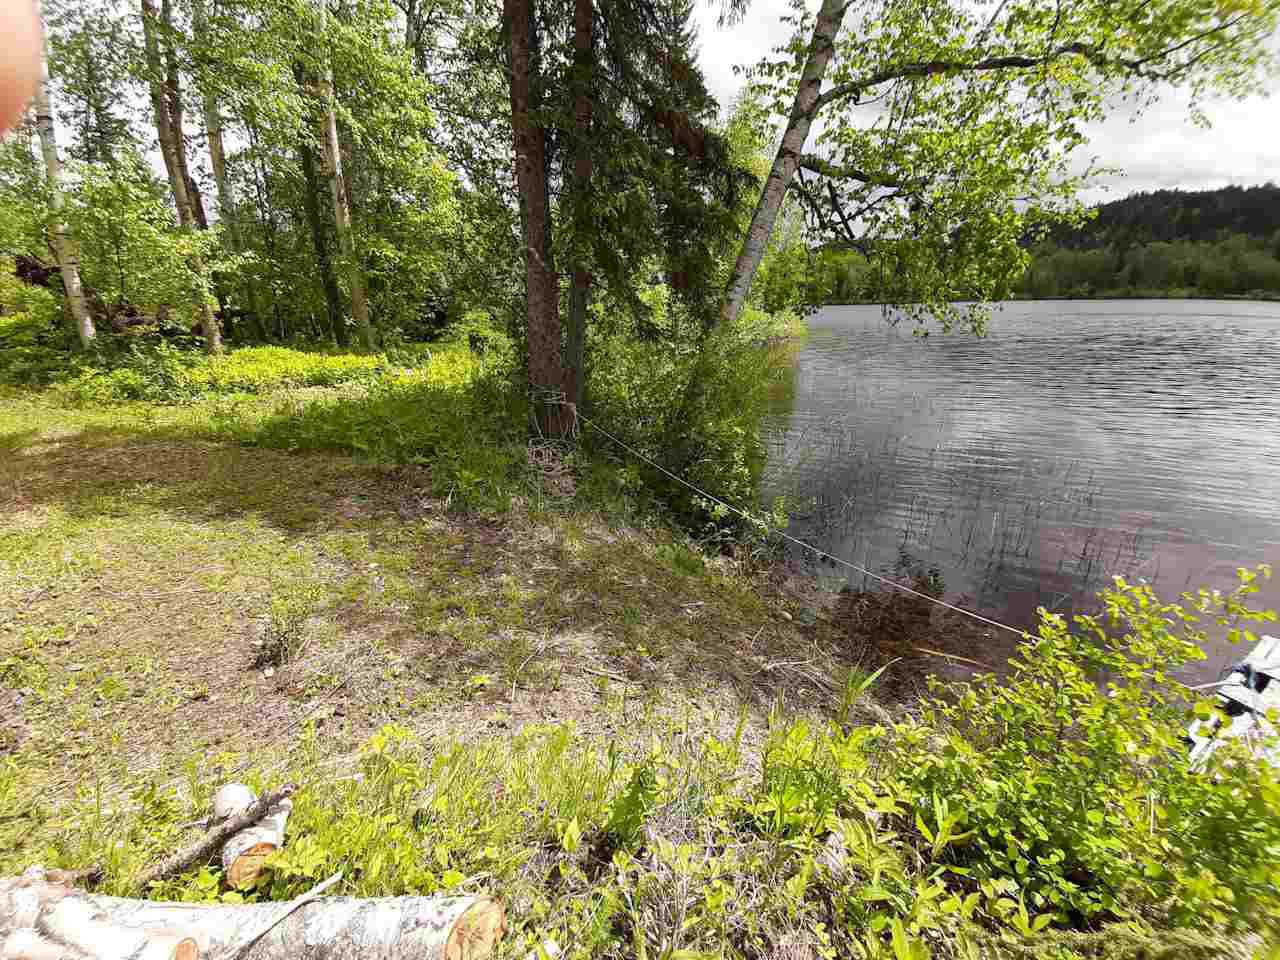 Main Photo: 2661 EAGLE CREEK Road in Canim Lake: Canim/Mahood Lake Land for sale (100 Mile House (Zone 10))  : MLS®# R2455419